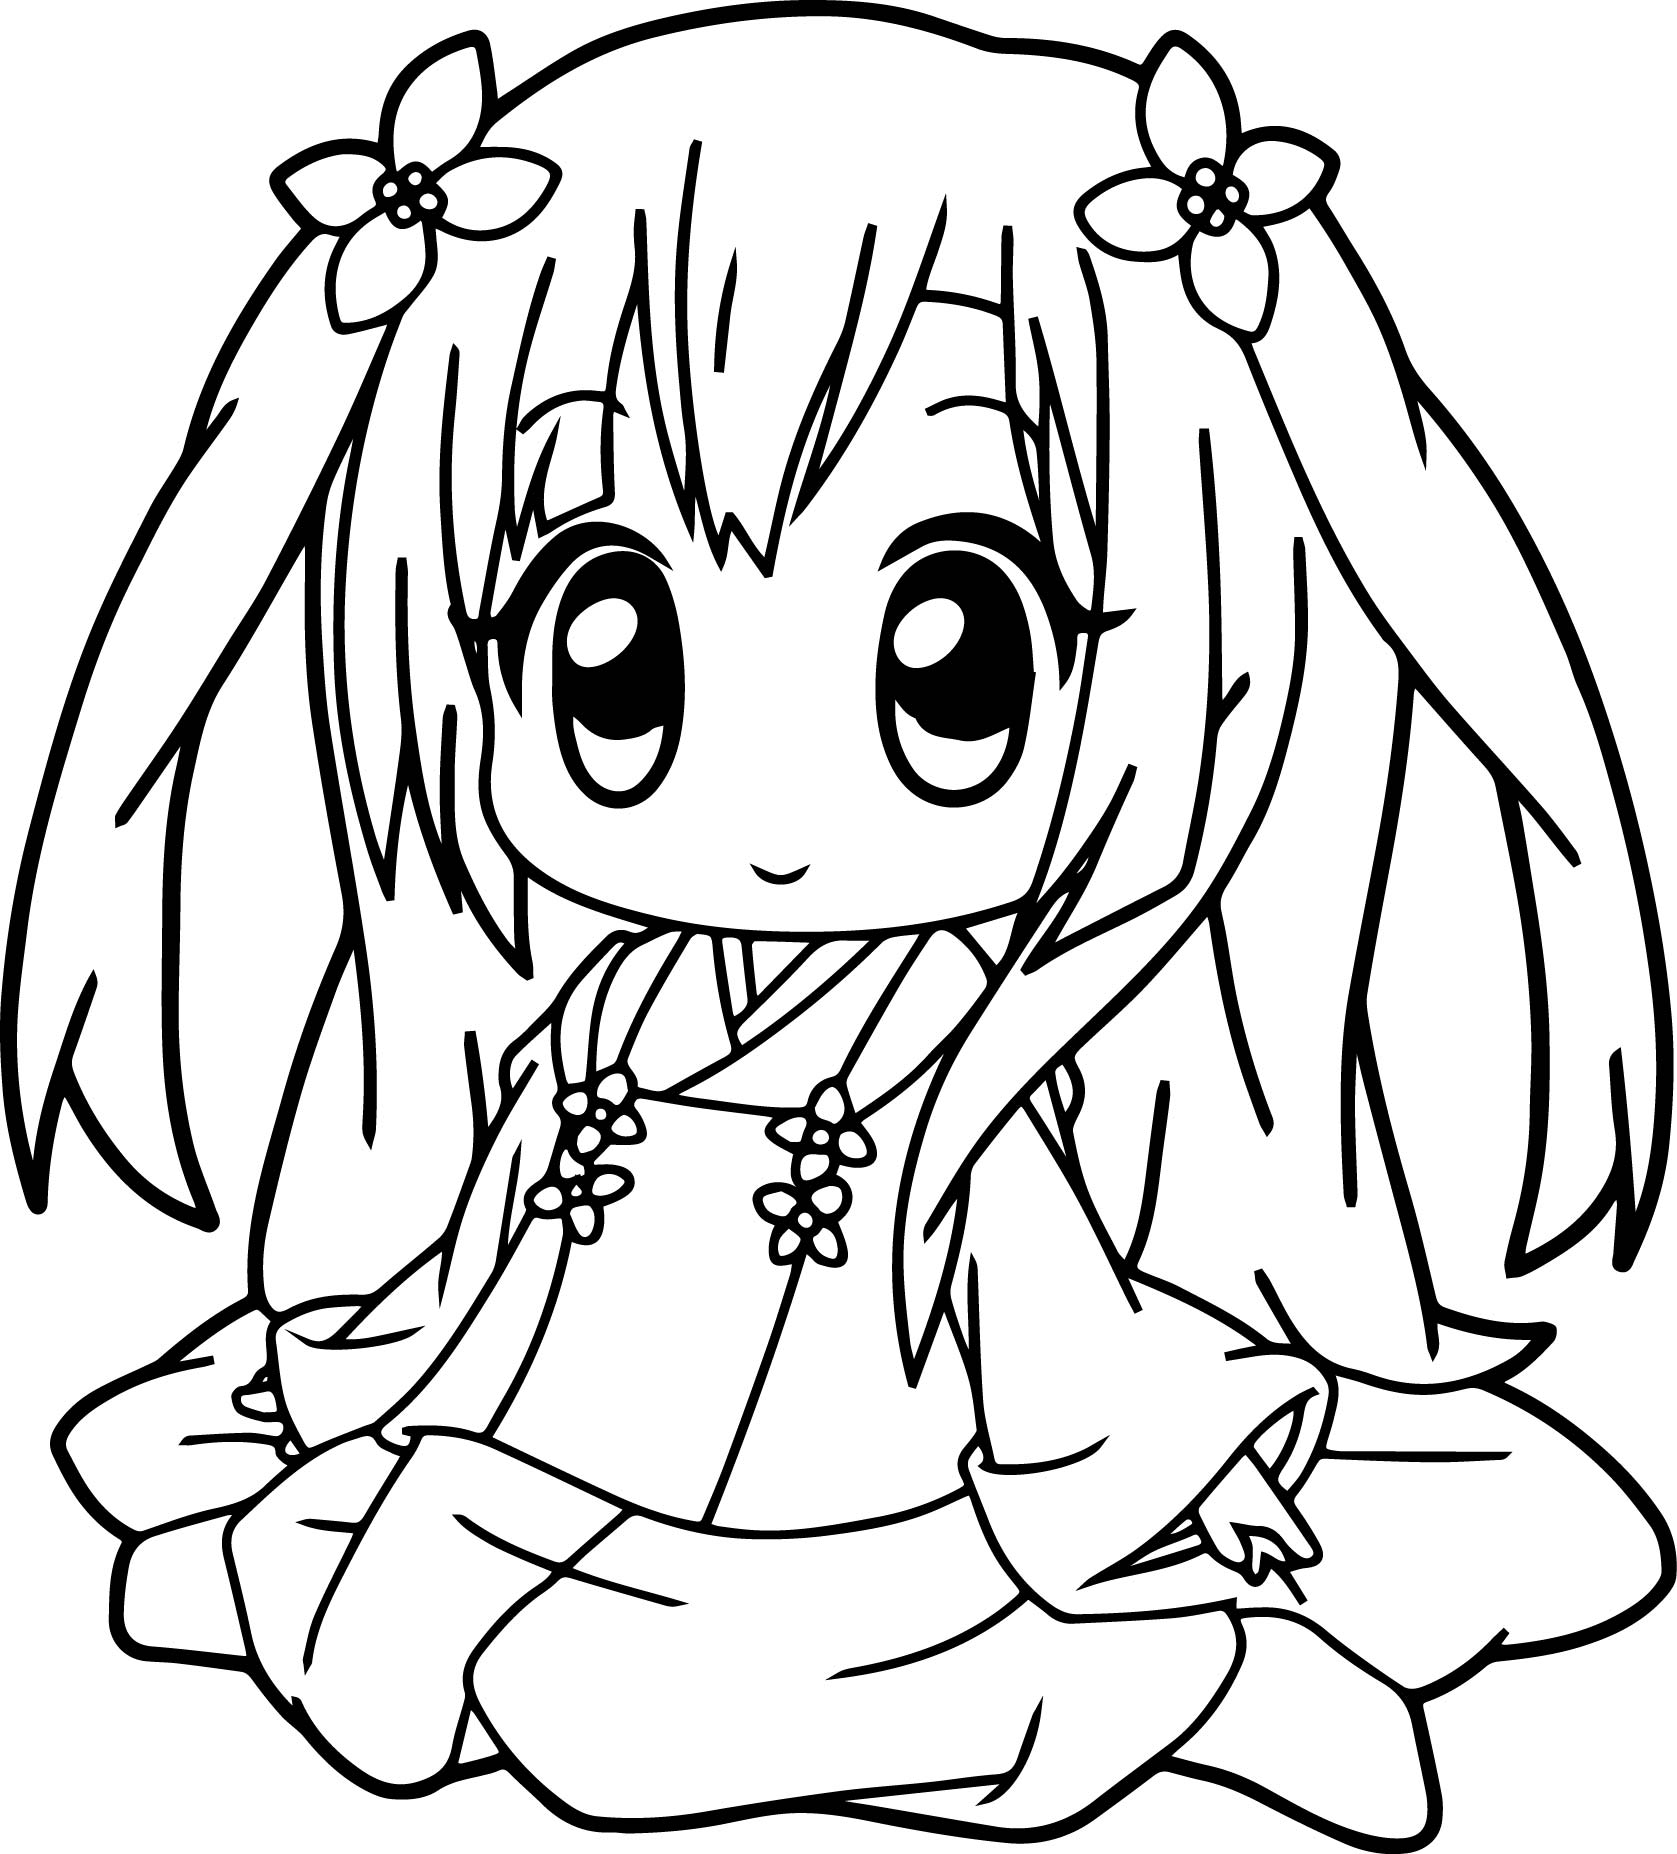 Very Cute Anime Girl Coloring Page Wecoloringpage